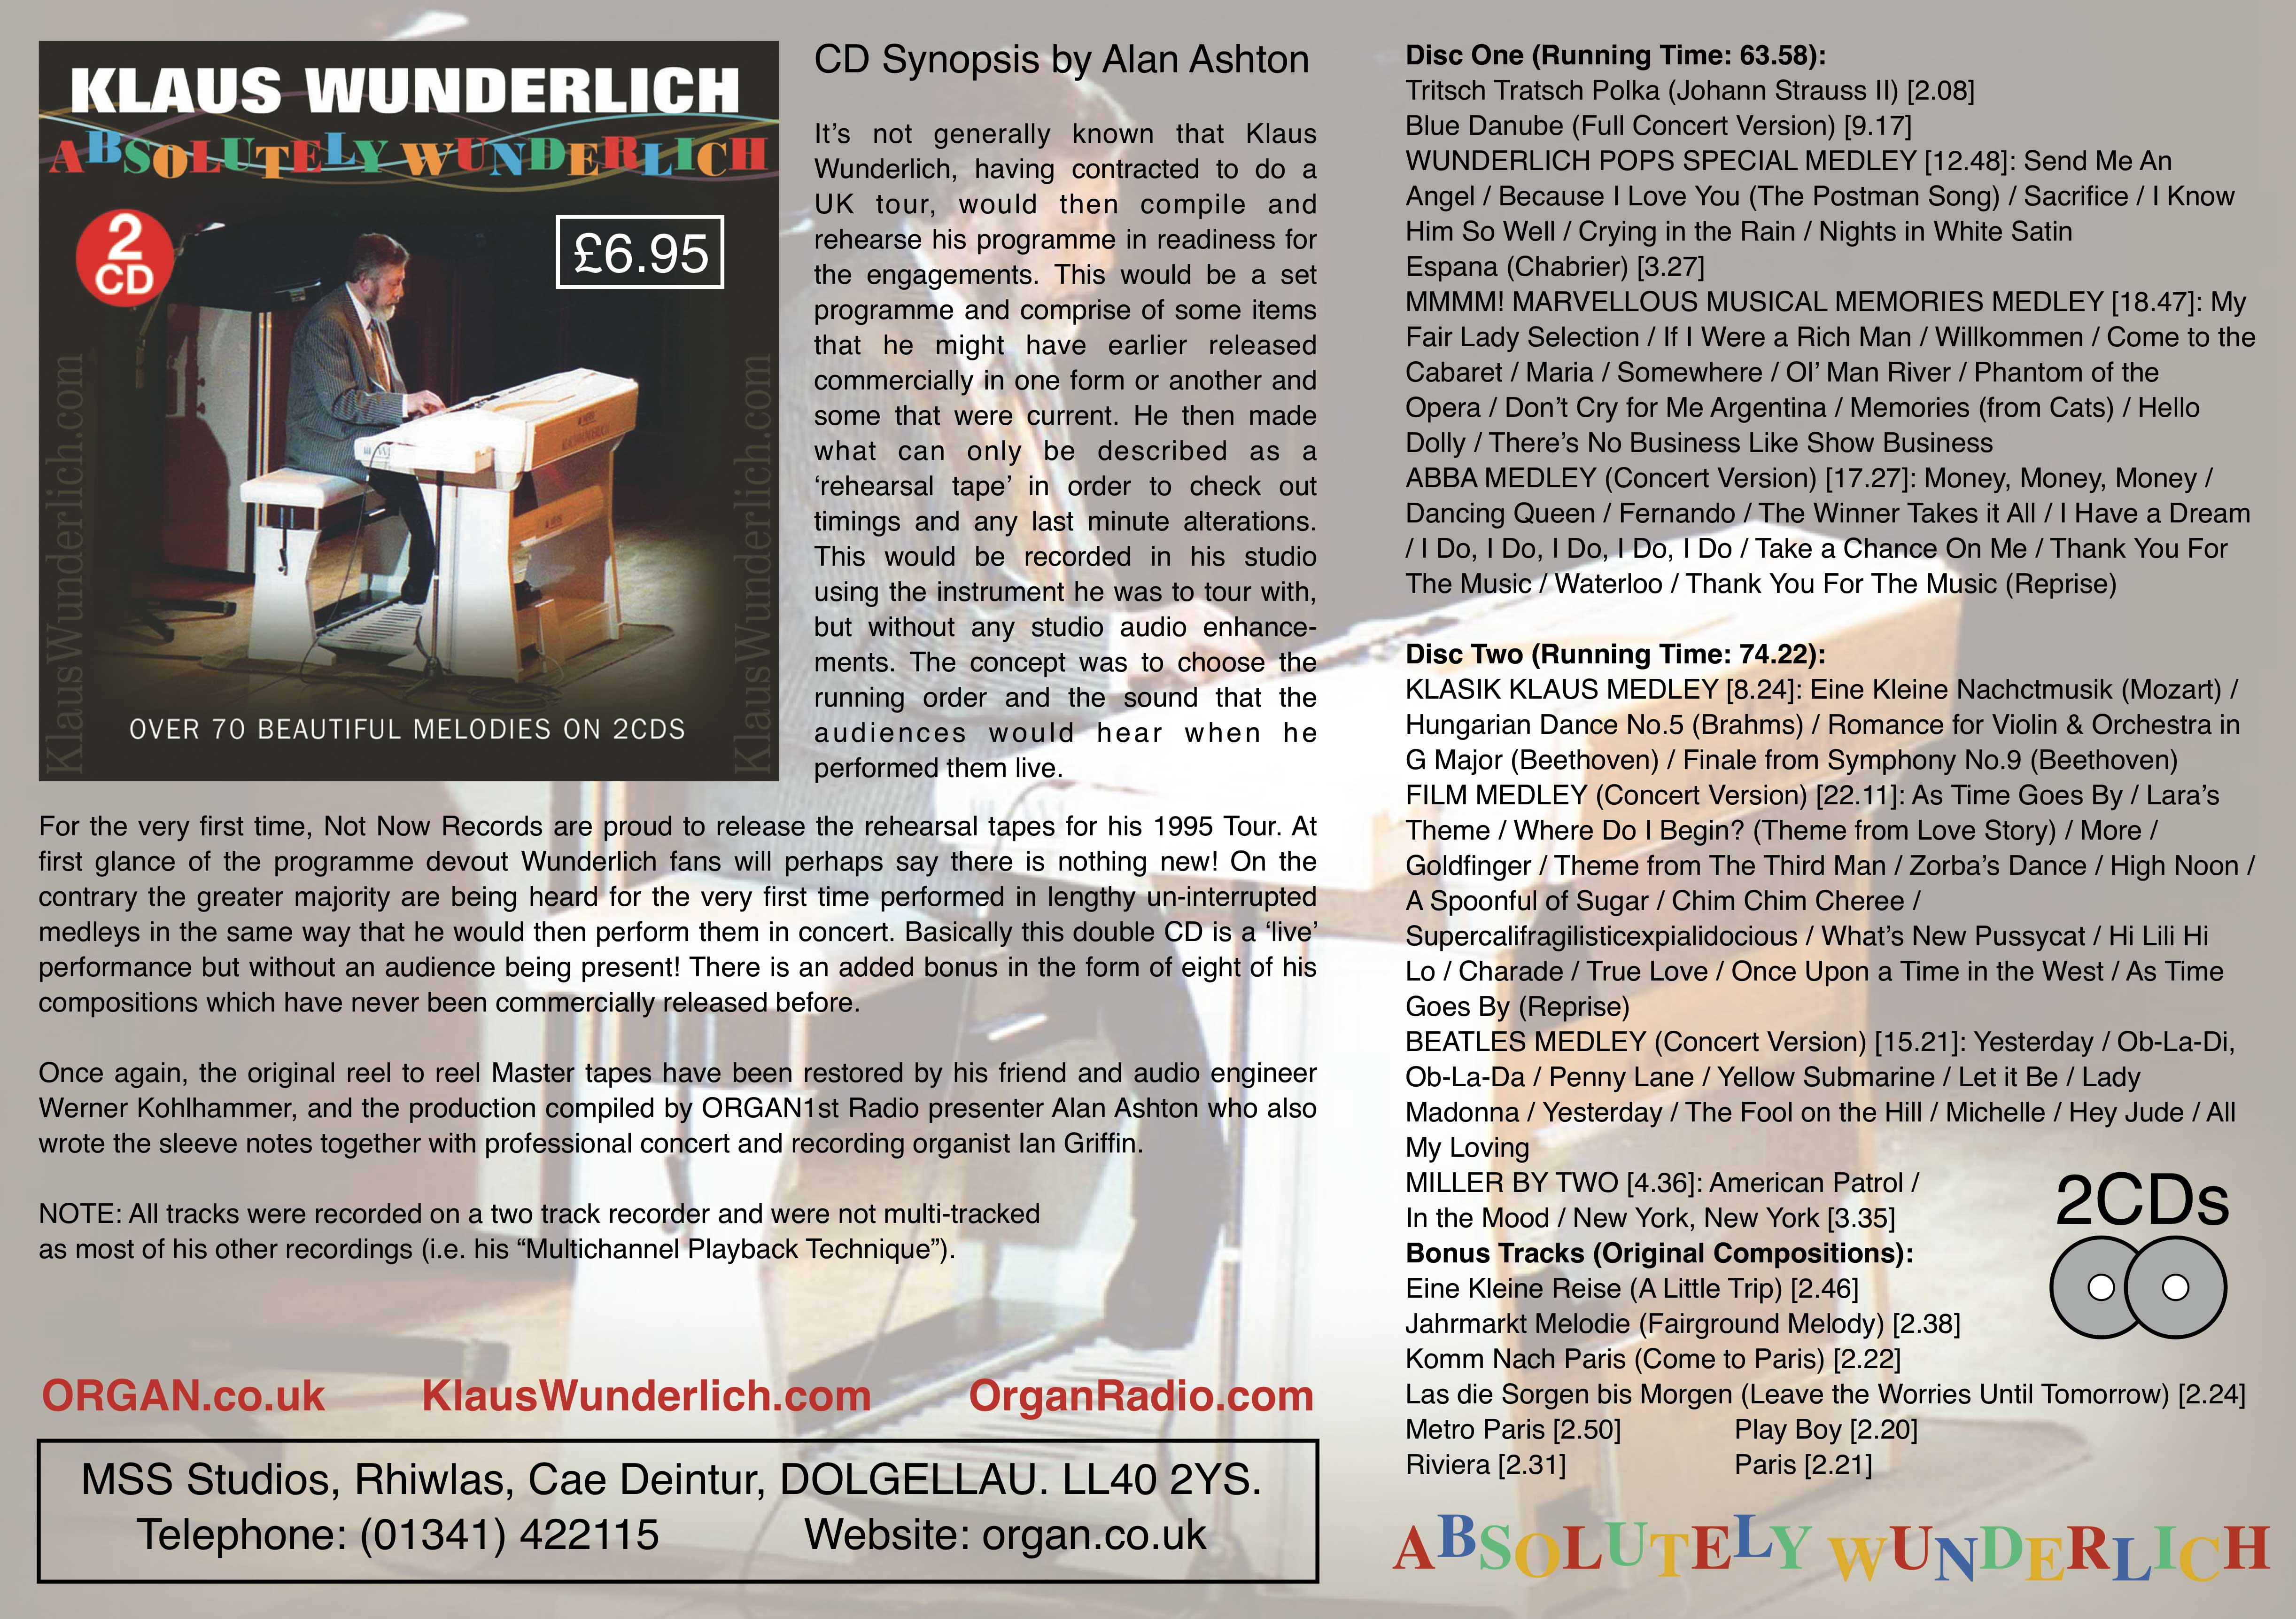 Absolutely Wunderlich (Promotional Flyer)